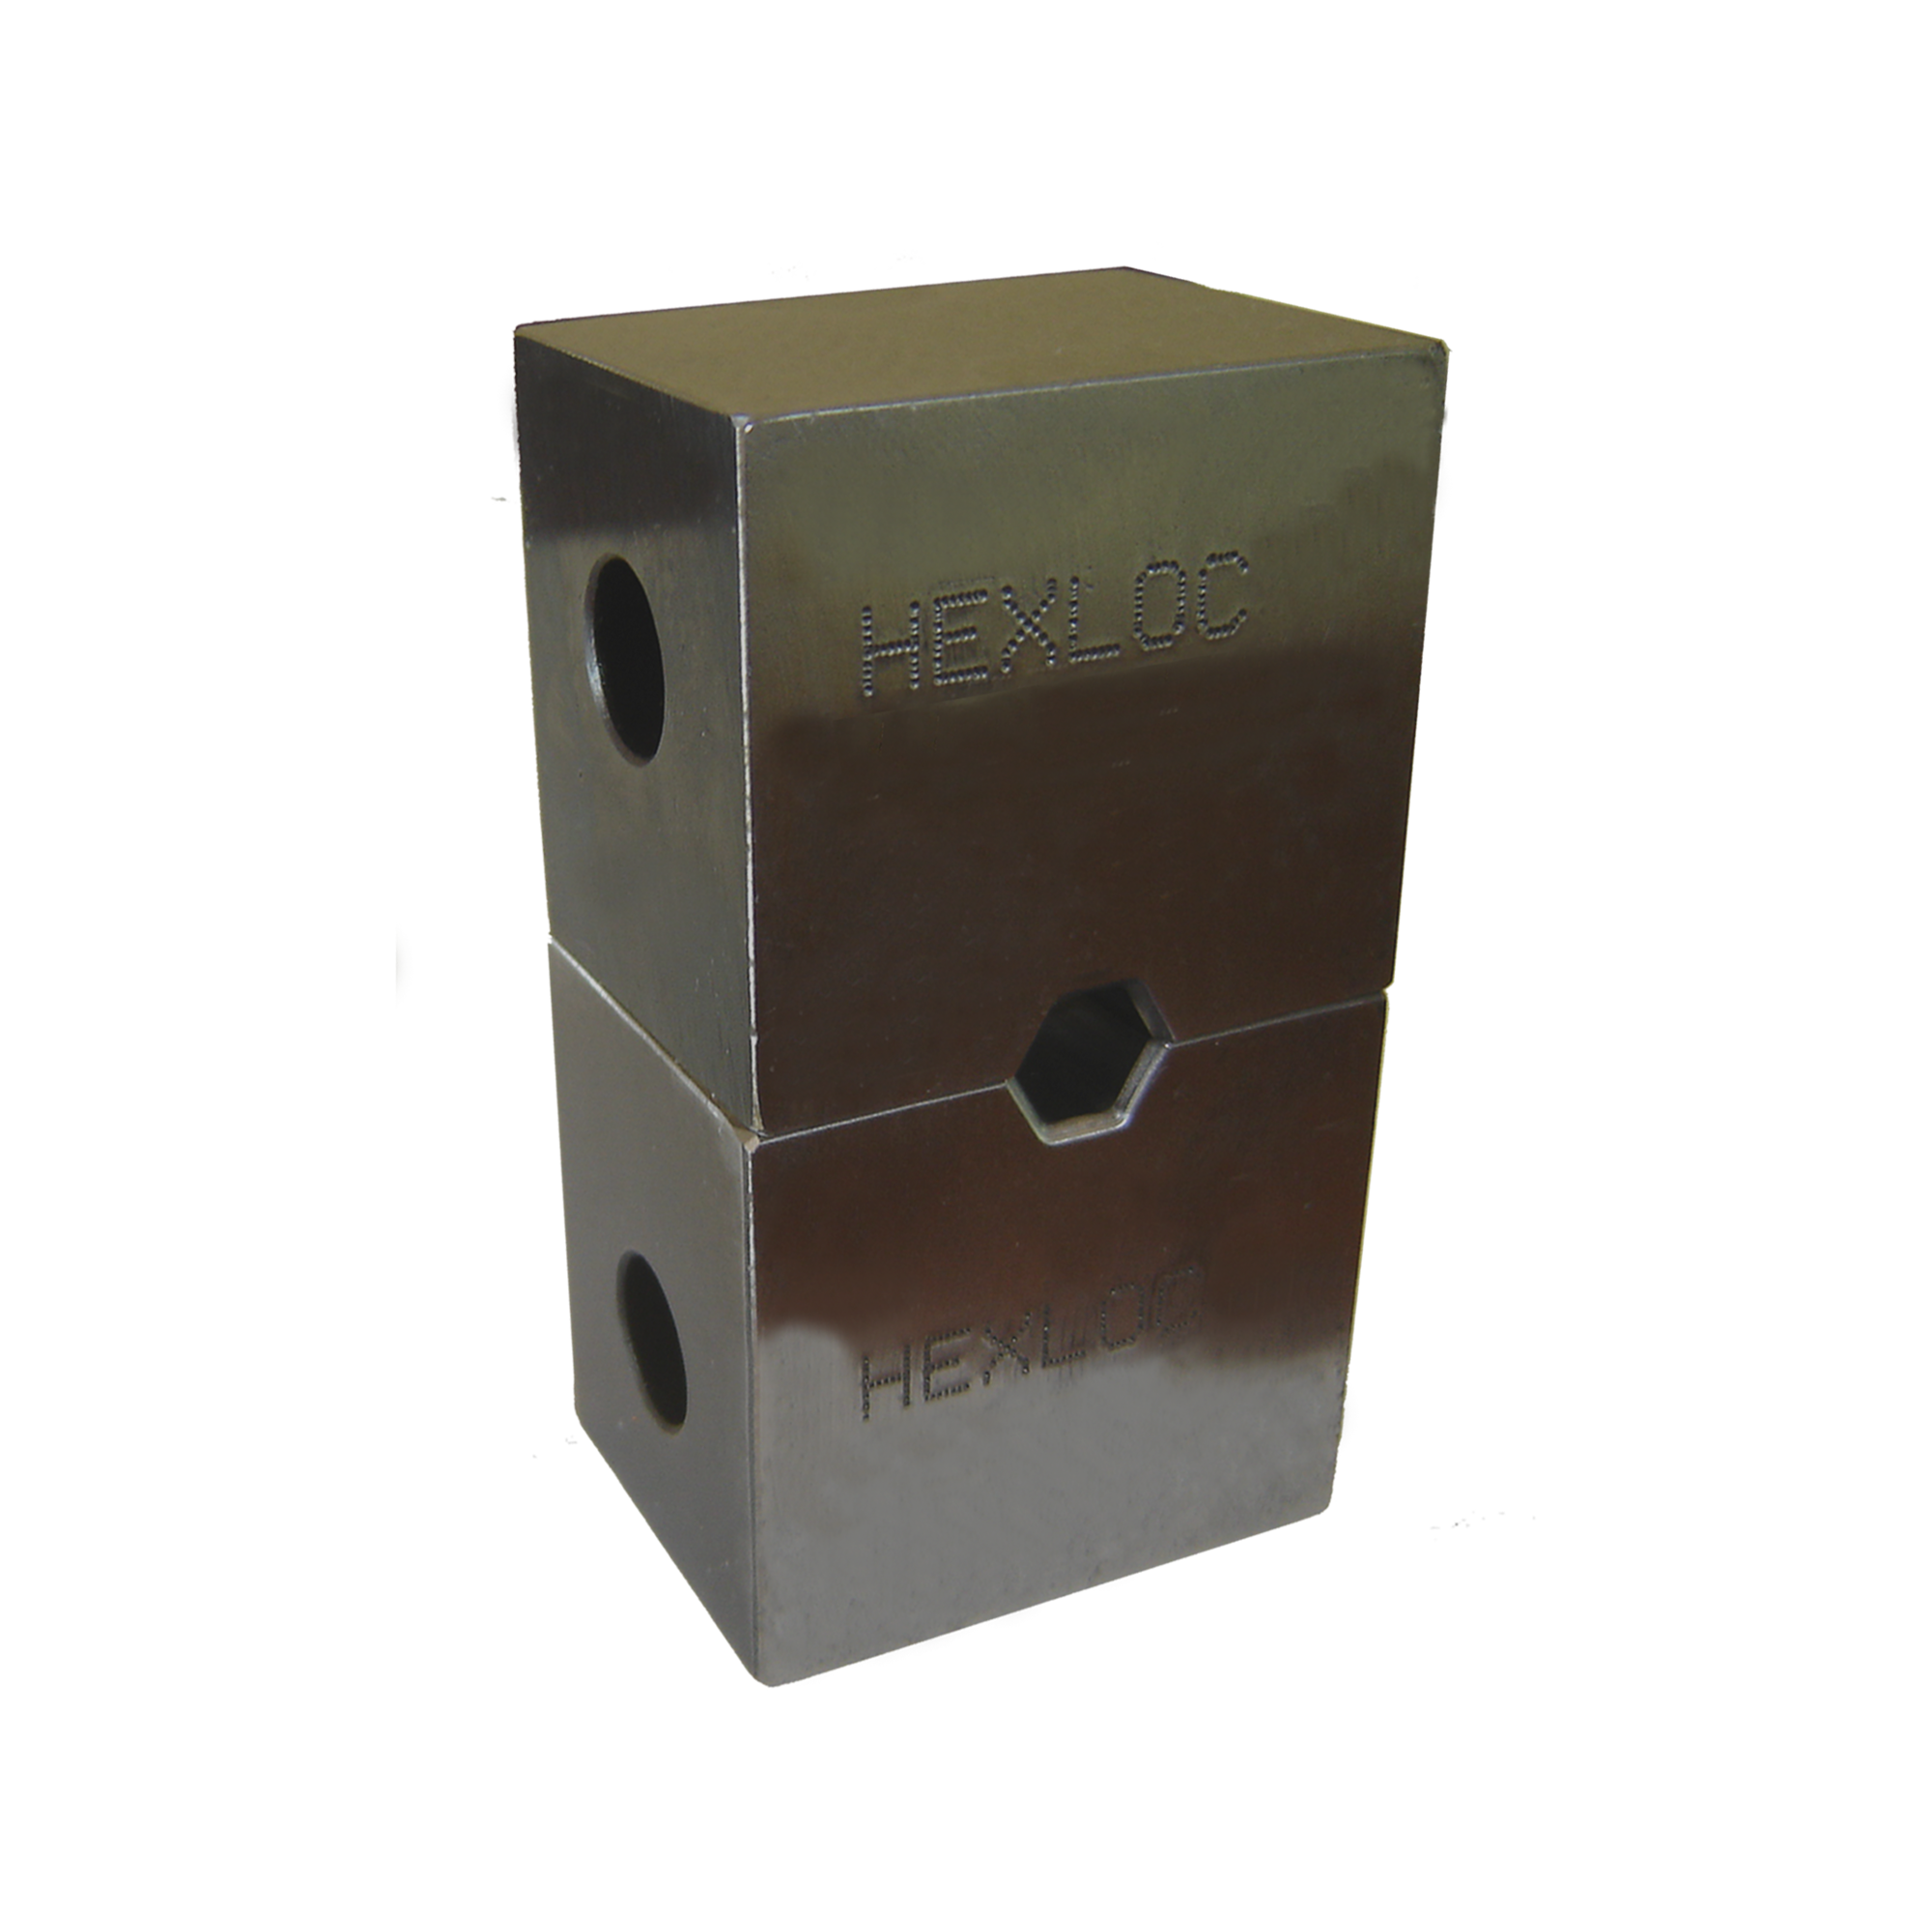 Hexloc Die Set for Stainless Fittings